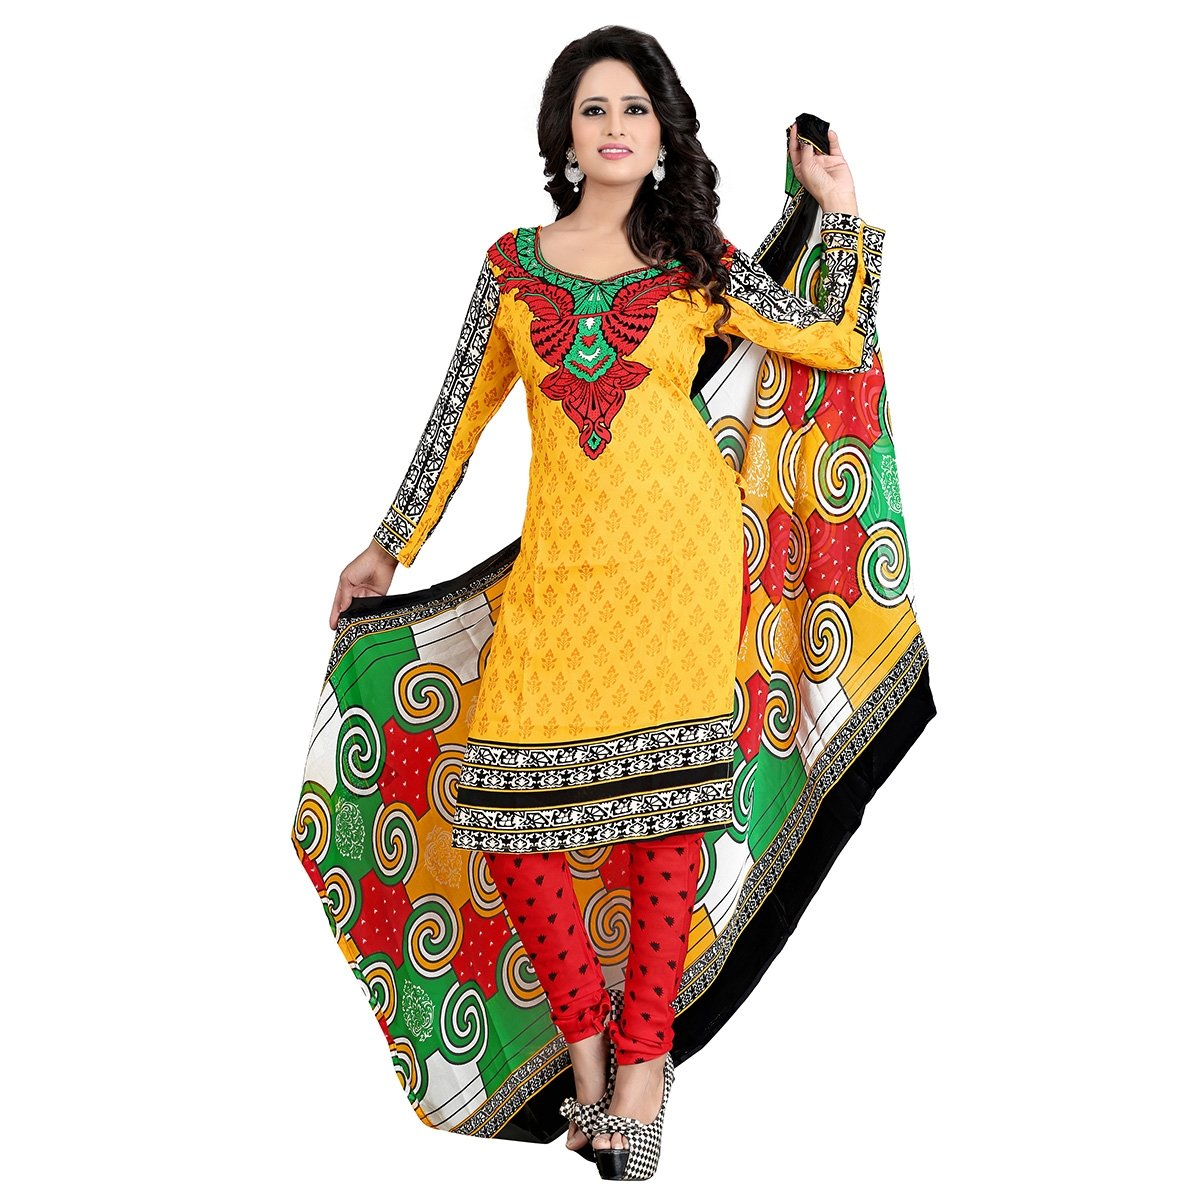 Shilp-kala Indian Trendy Yellow Colored Printed Synthetic Unstitched Salwar Kameez SKTSTZPRSK5034